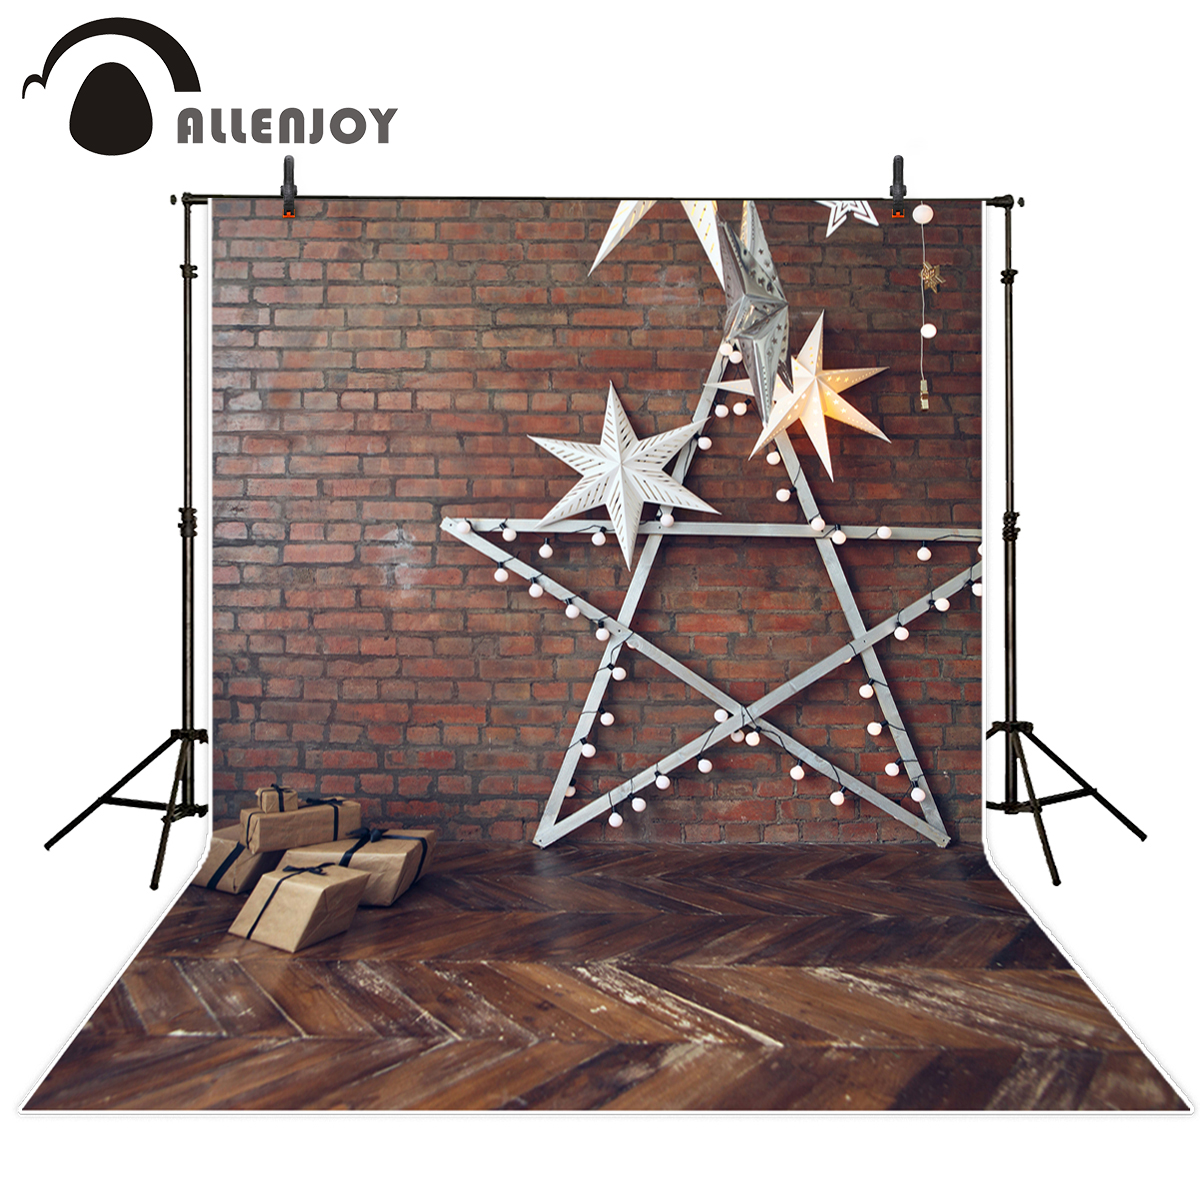 Allenjoy photography backdrops brick wall snowflake star wood floor decor backgrounds for photo studio photo background vinyl